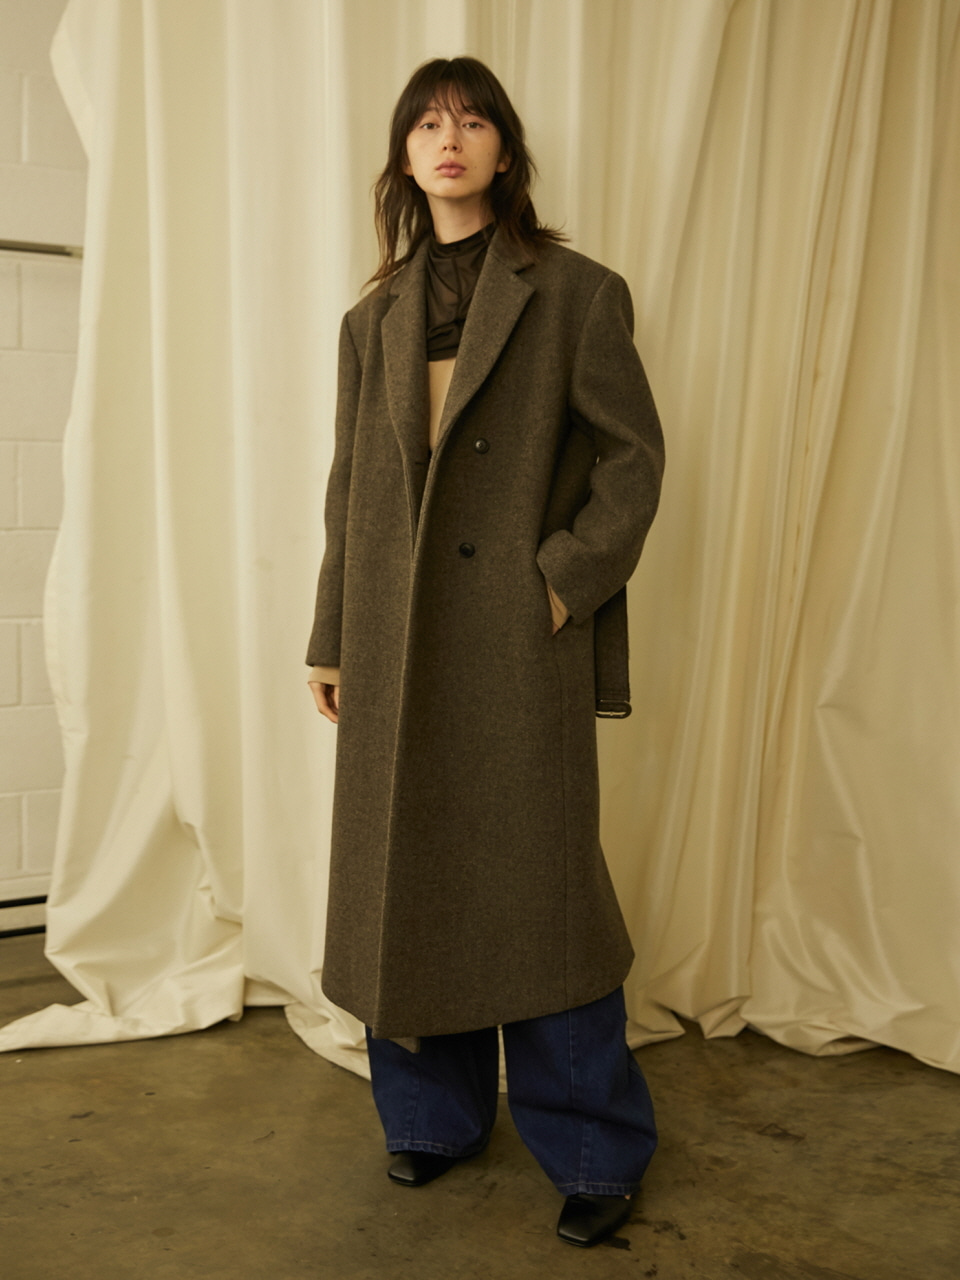 MEN'S MAXI COAT - HERRING BONE BROWN